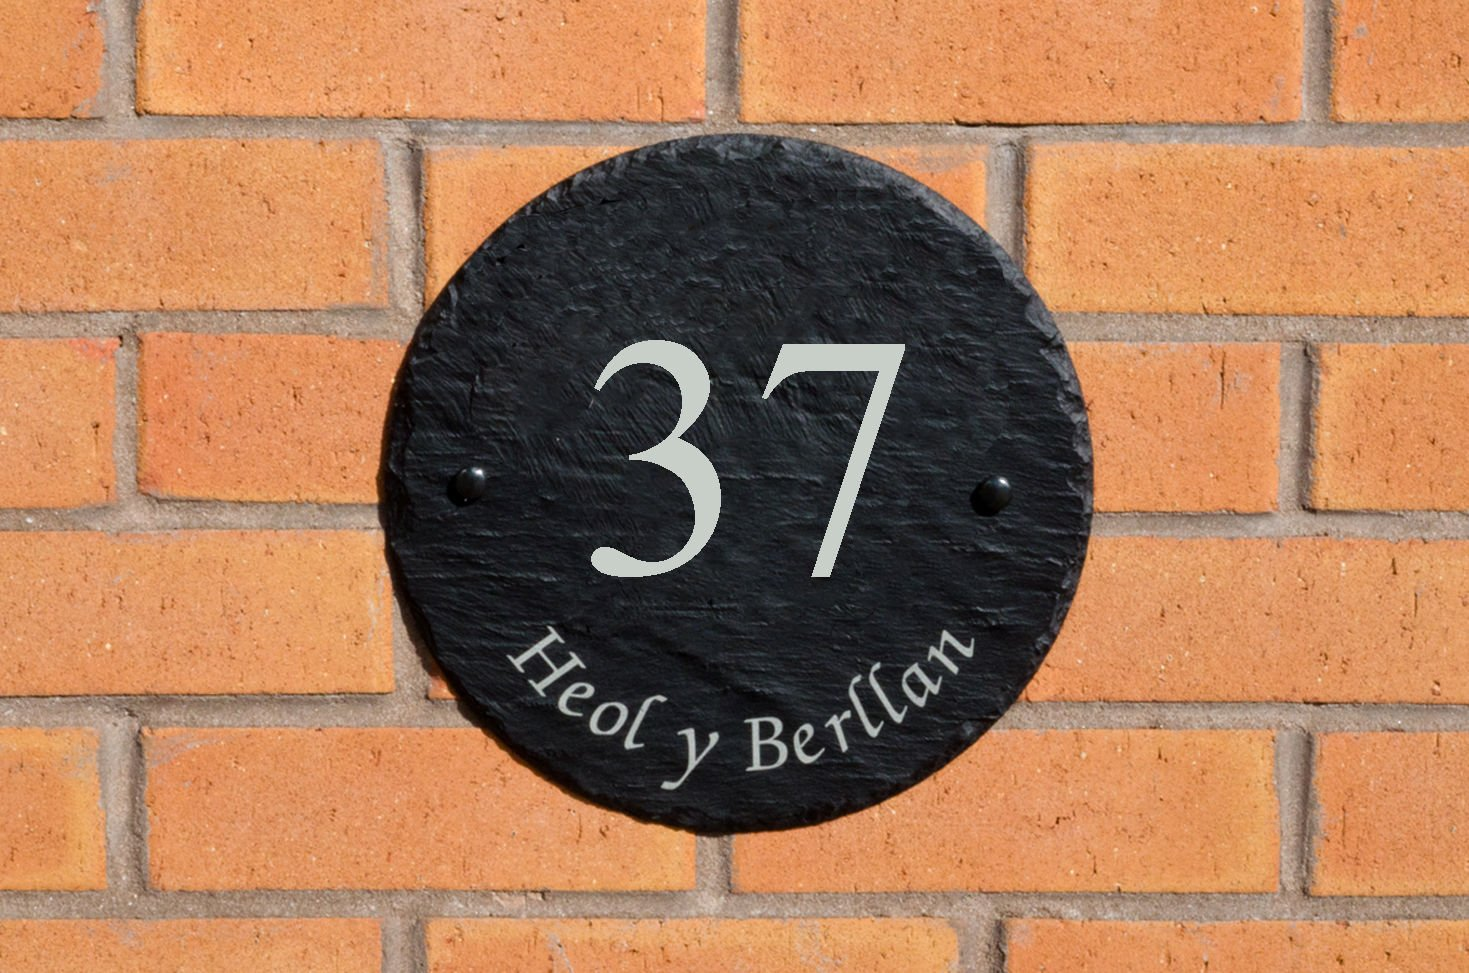 Personalised Large Round Slate Outdoor House/Home Sign Plaque, Engraved With Your House Number And Street Name County Engraving